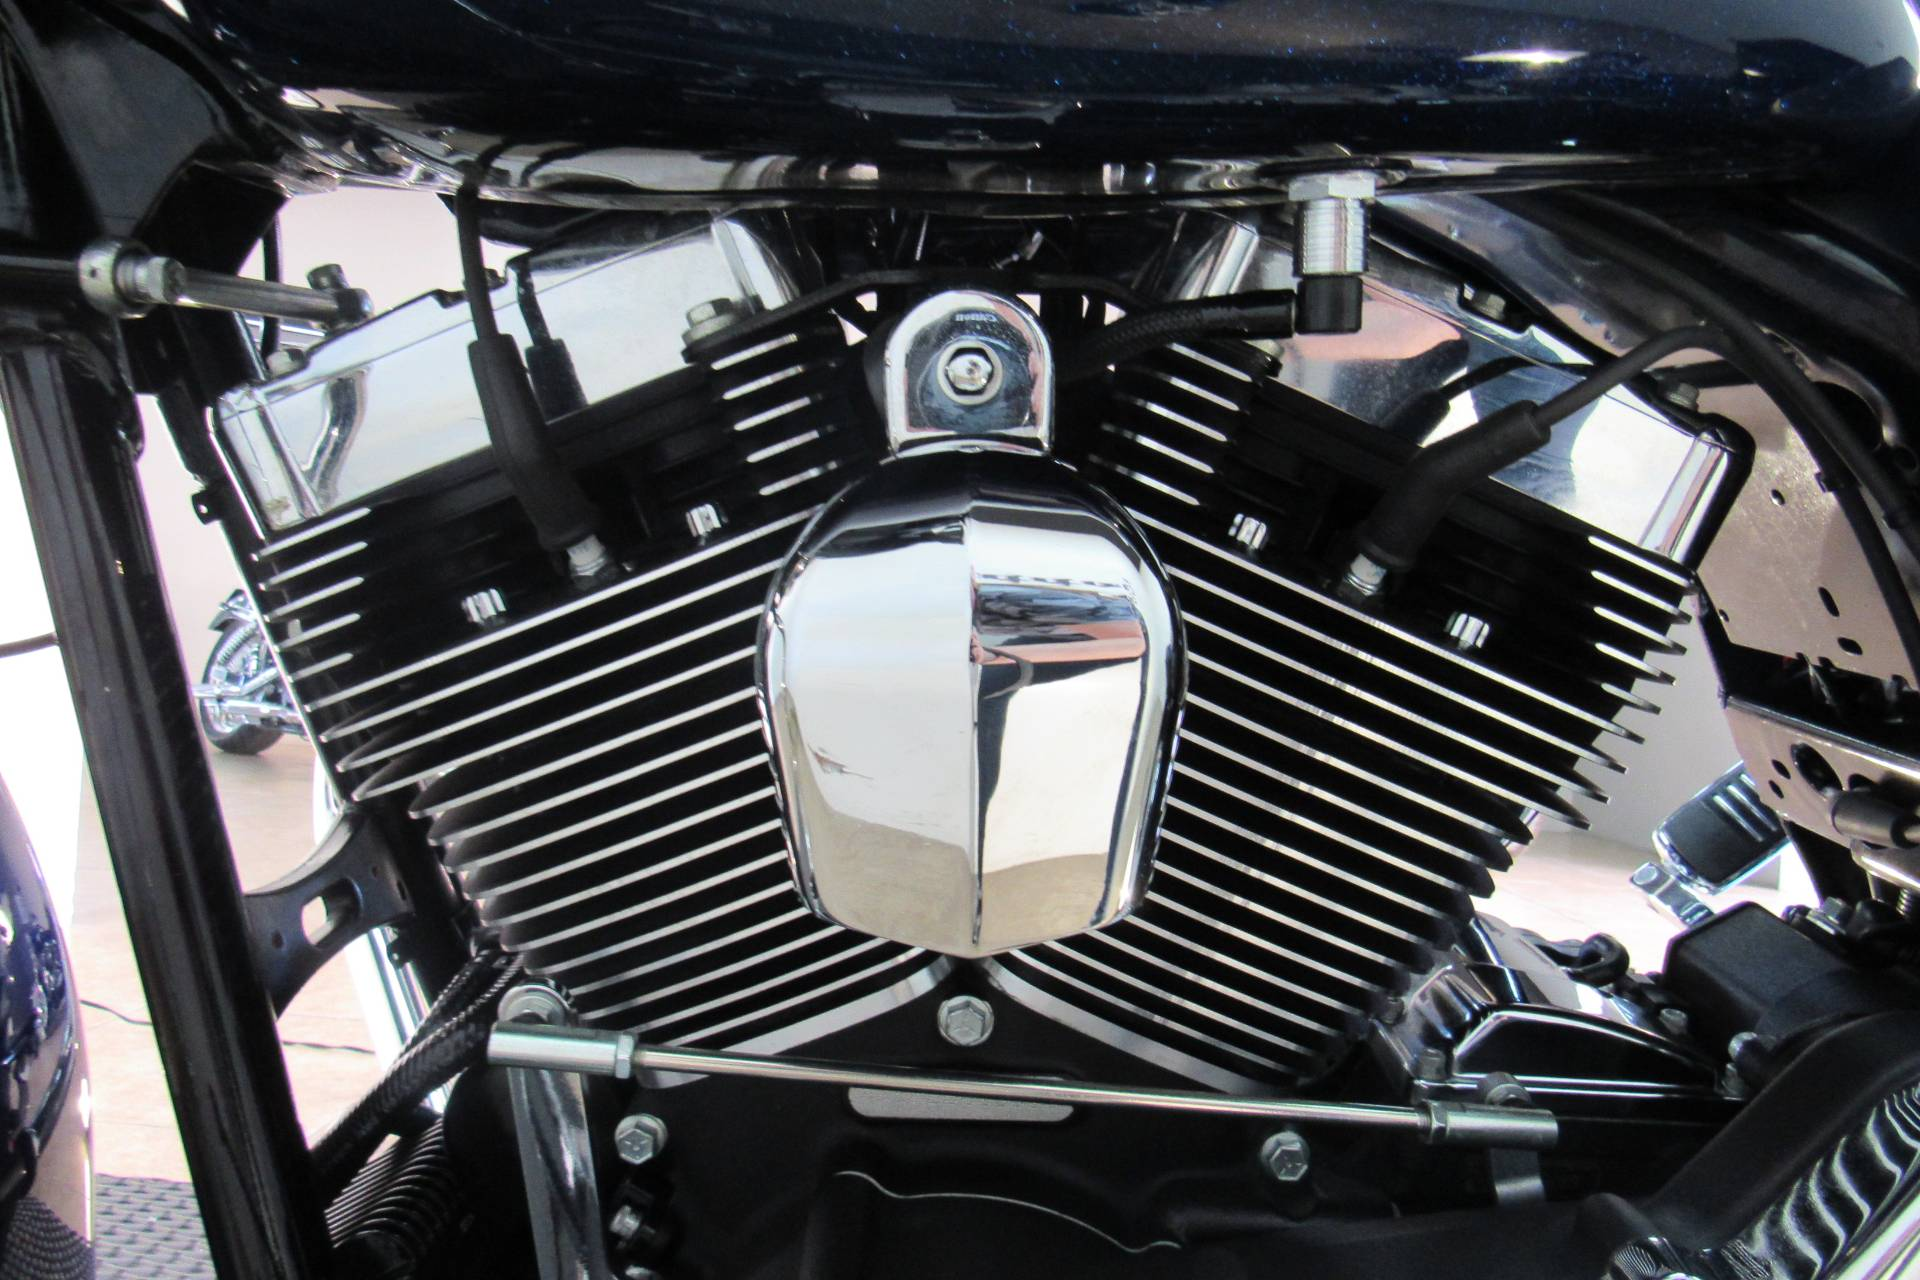 2014 Harley-Davidson Street Glide® in Temecula, California - Photo 21